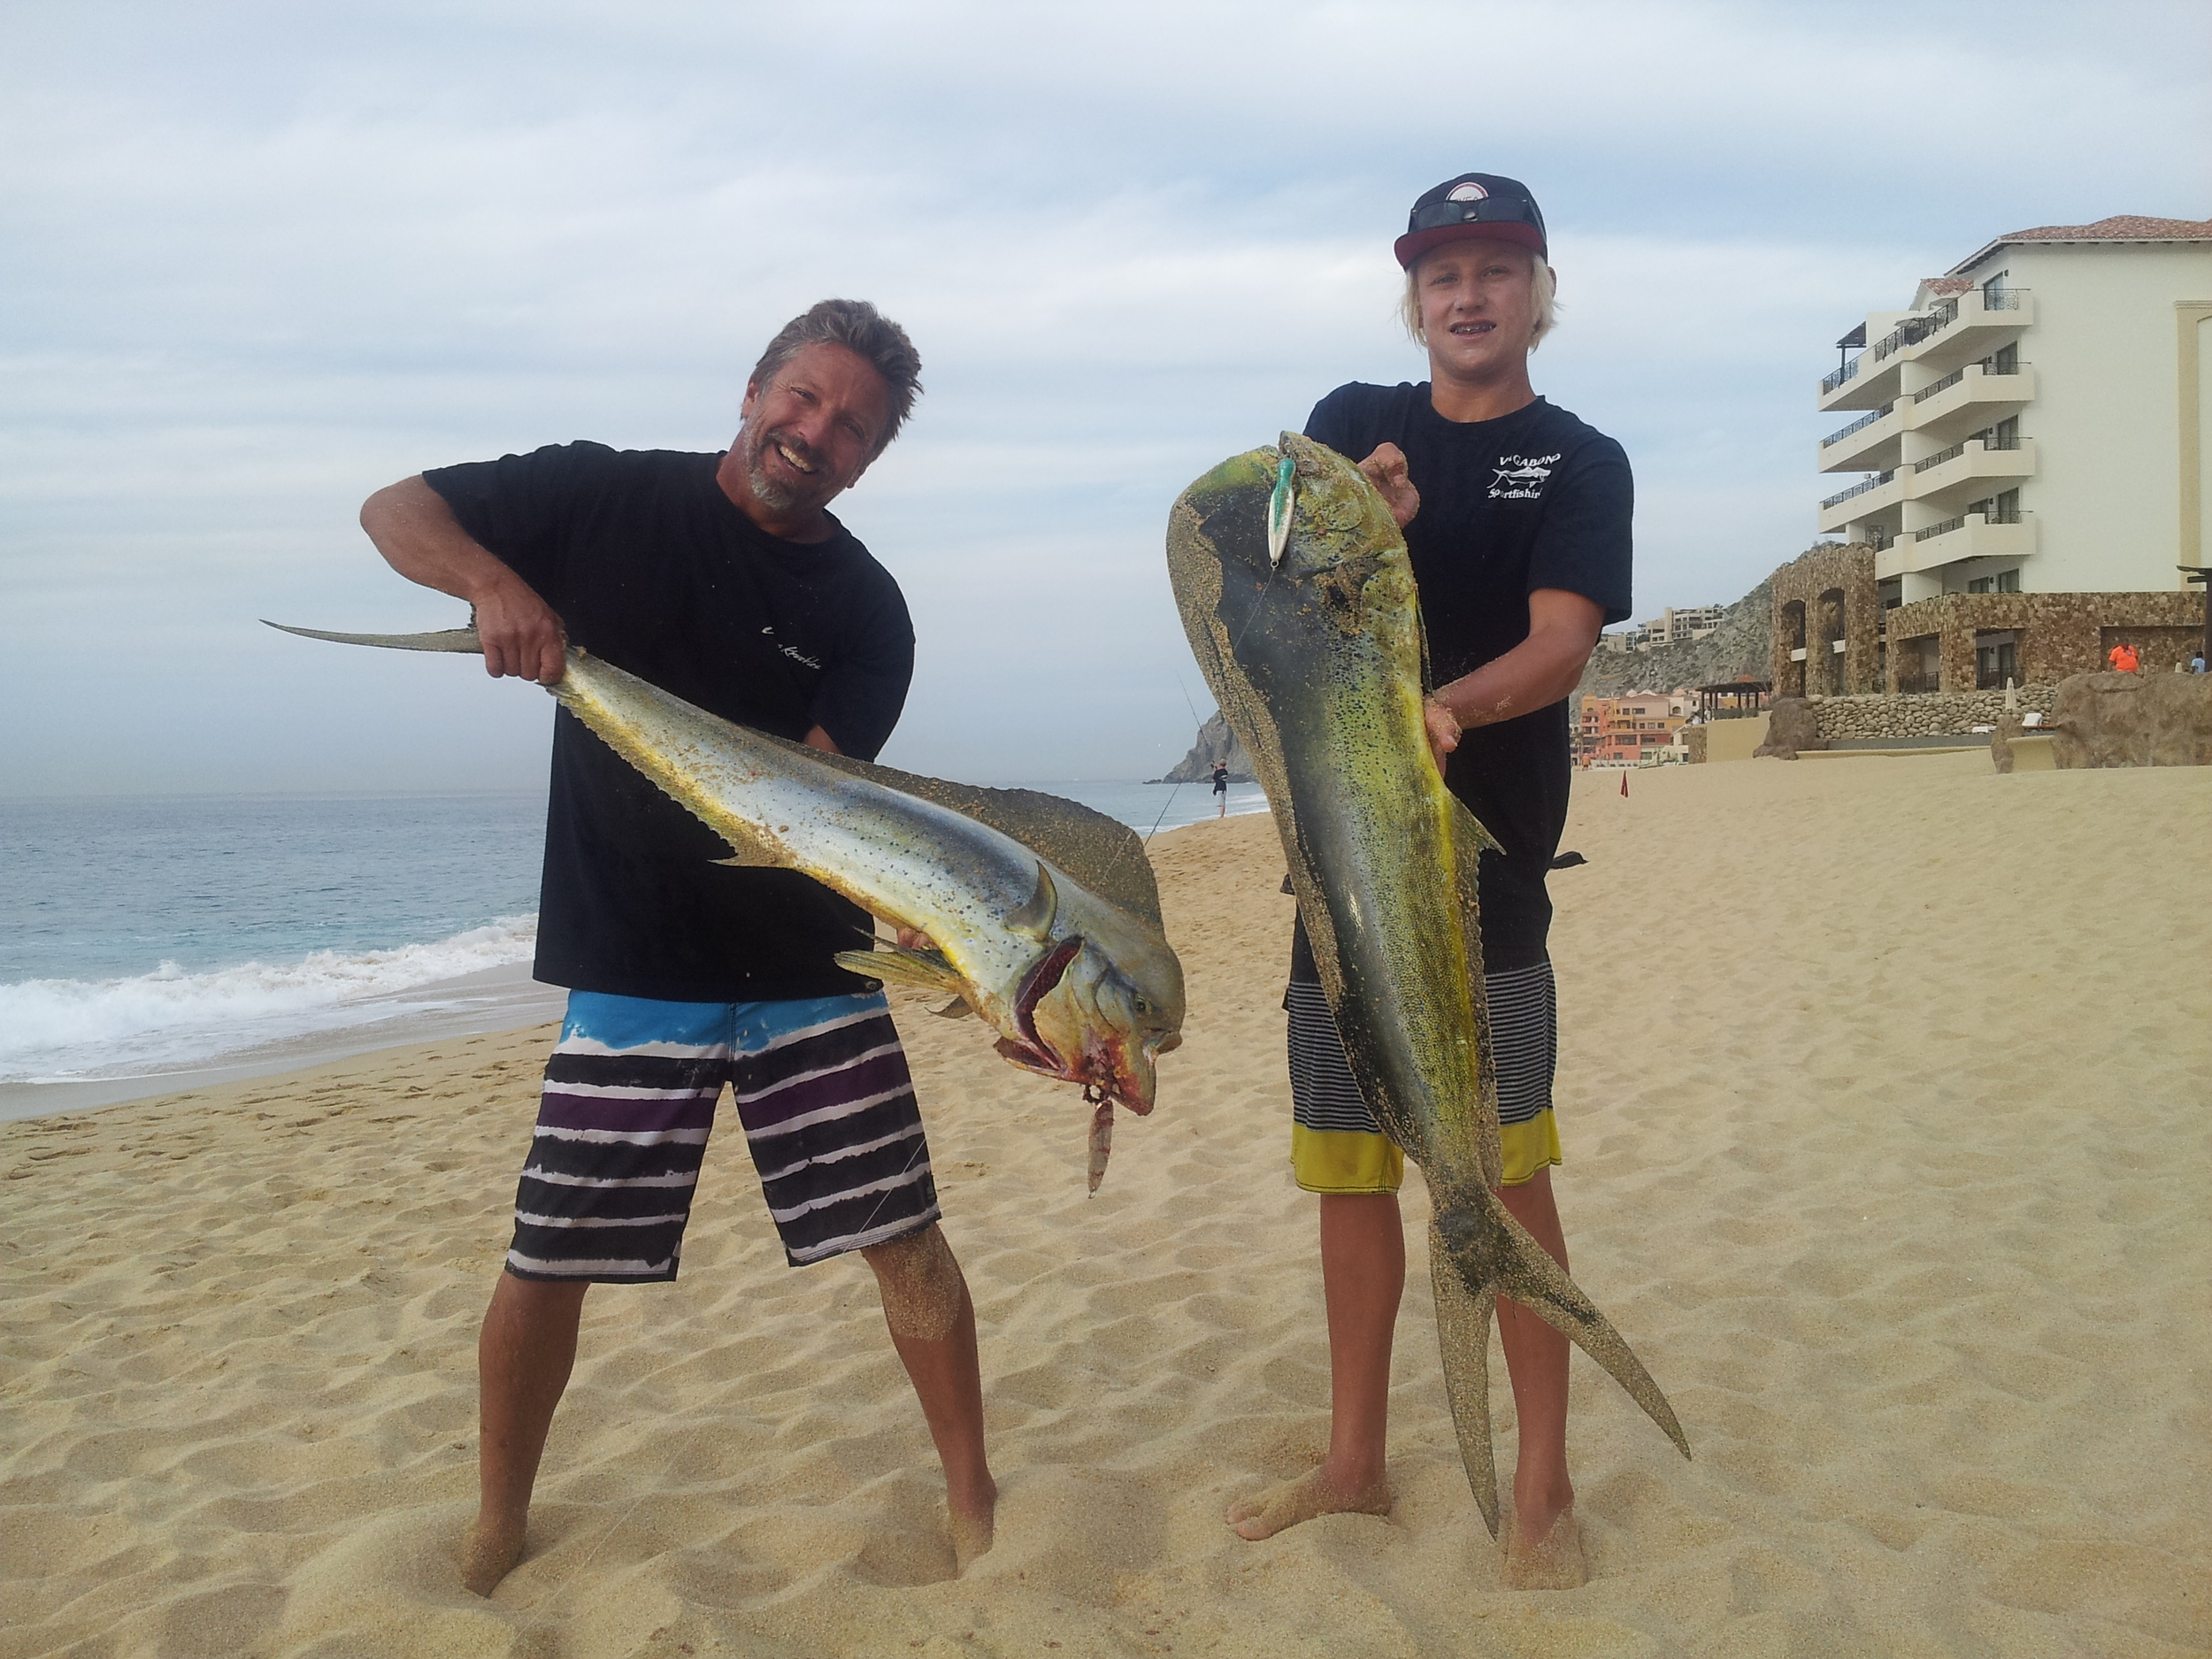 Mike on the Left and Luke on the right, with two nice Dorado outside their hotel, Solmar, in Cabo San Lucas BCS. Note the surface iron in Luke's fish.